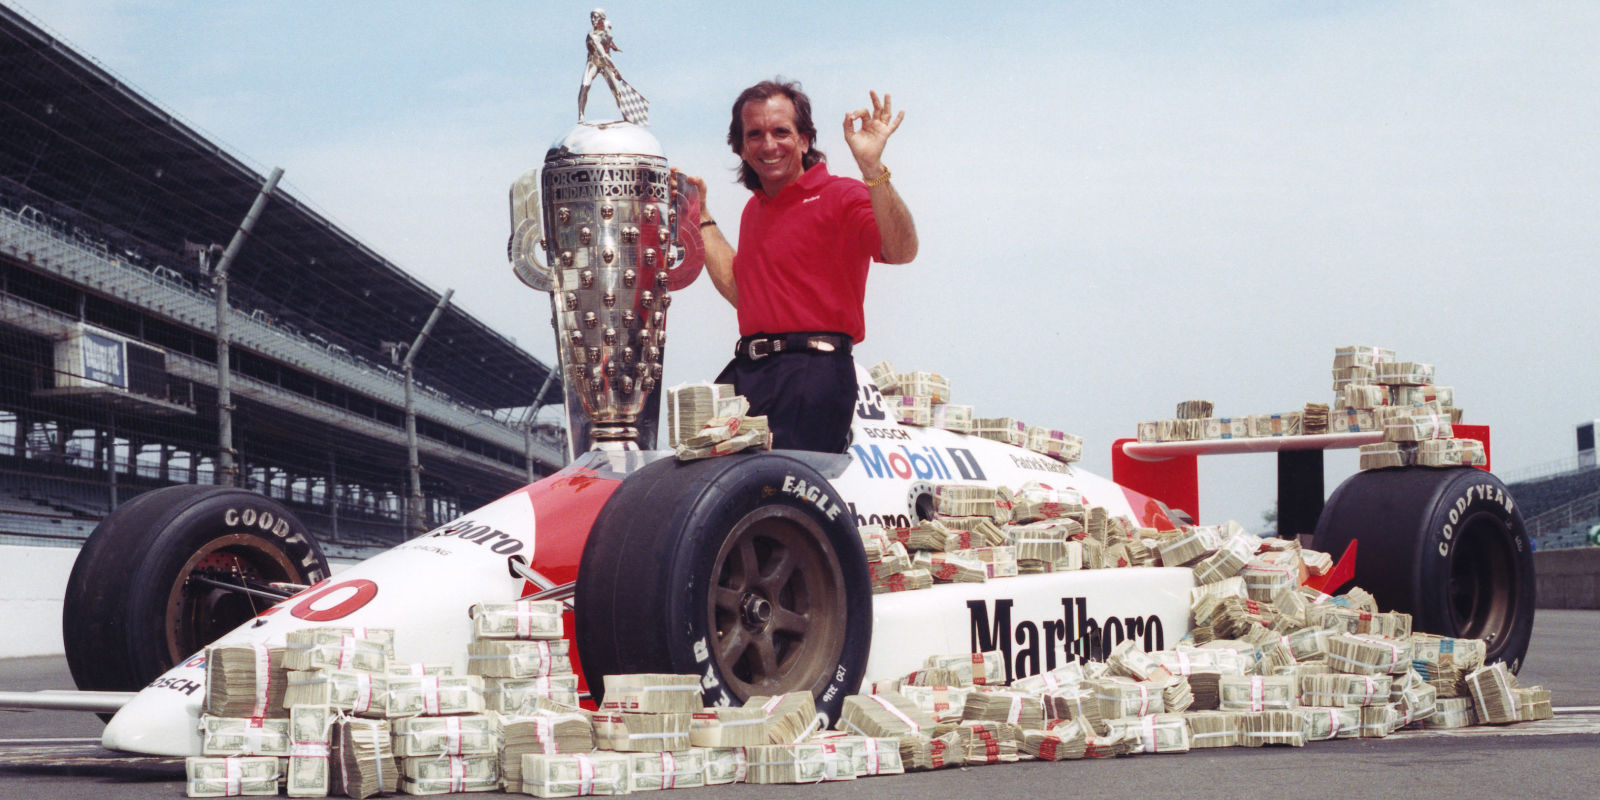 F1 And Indy 500 Champion Emerson Fittipaldi Reportedly